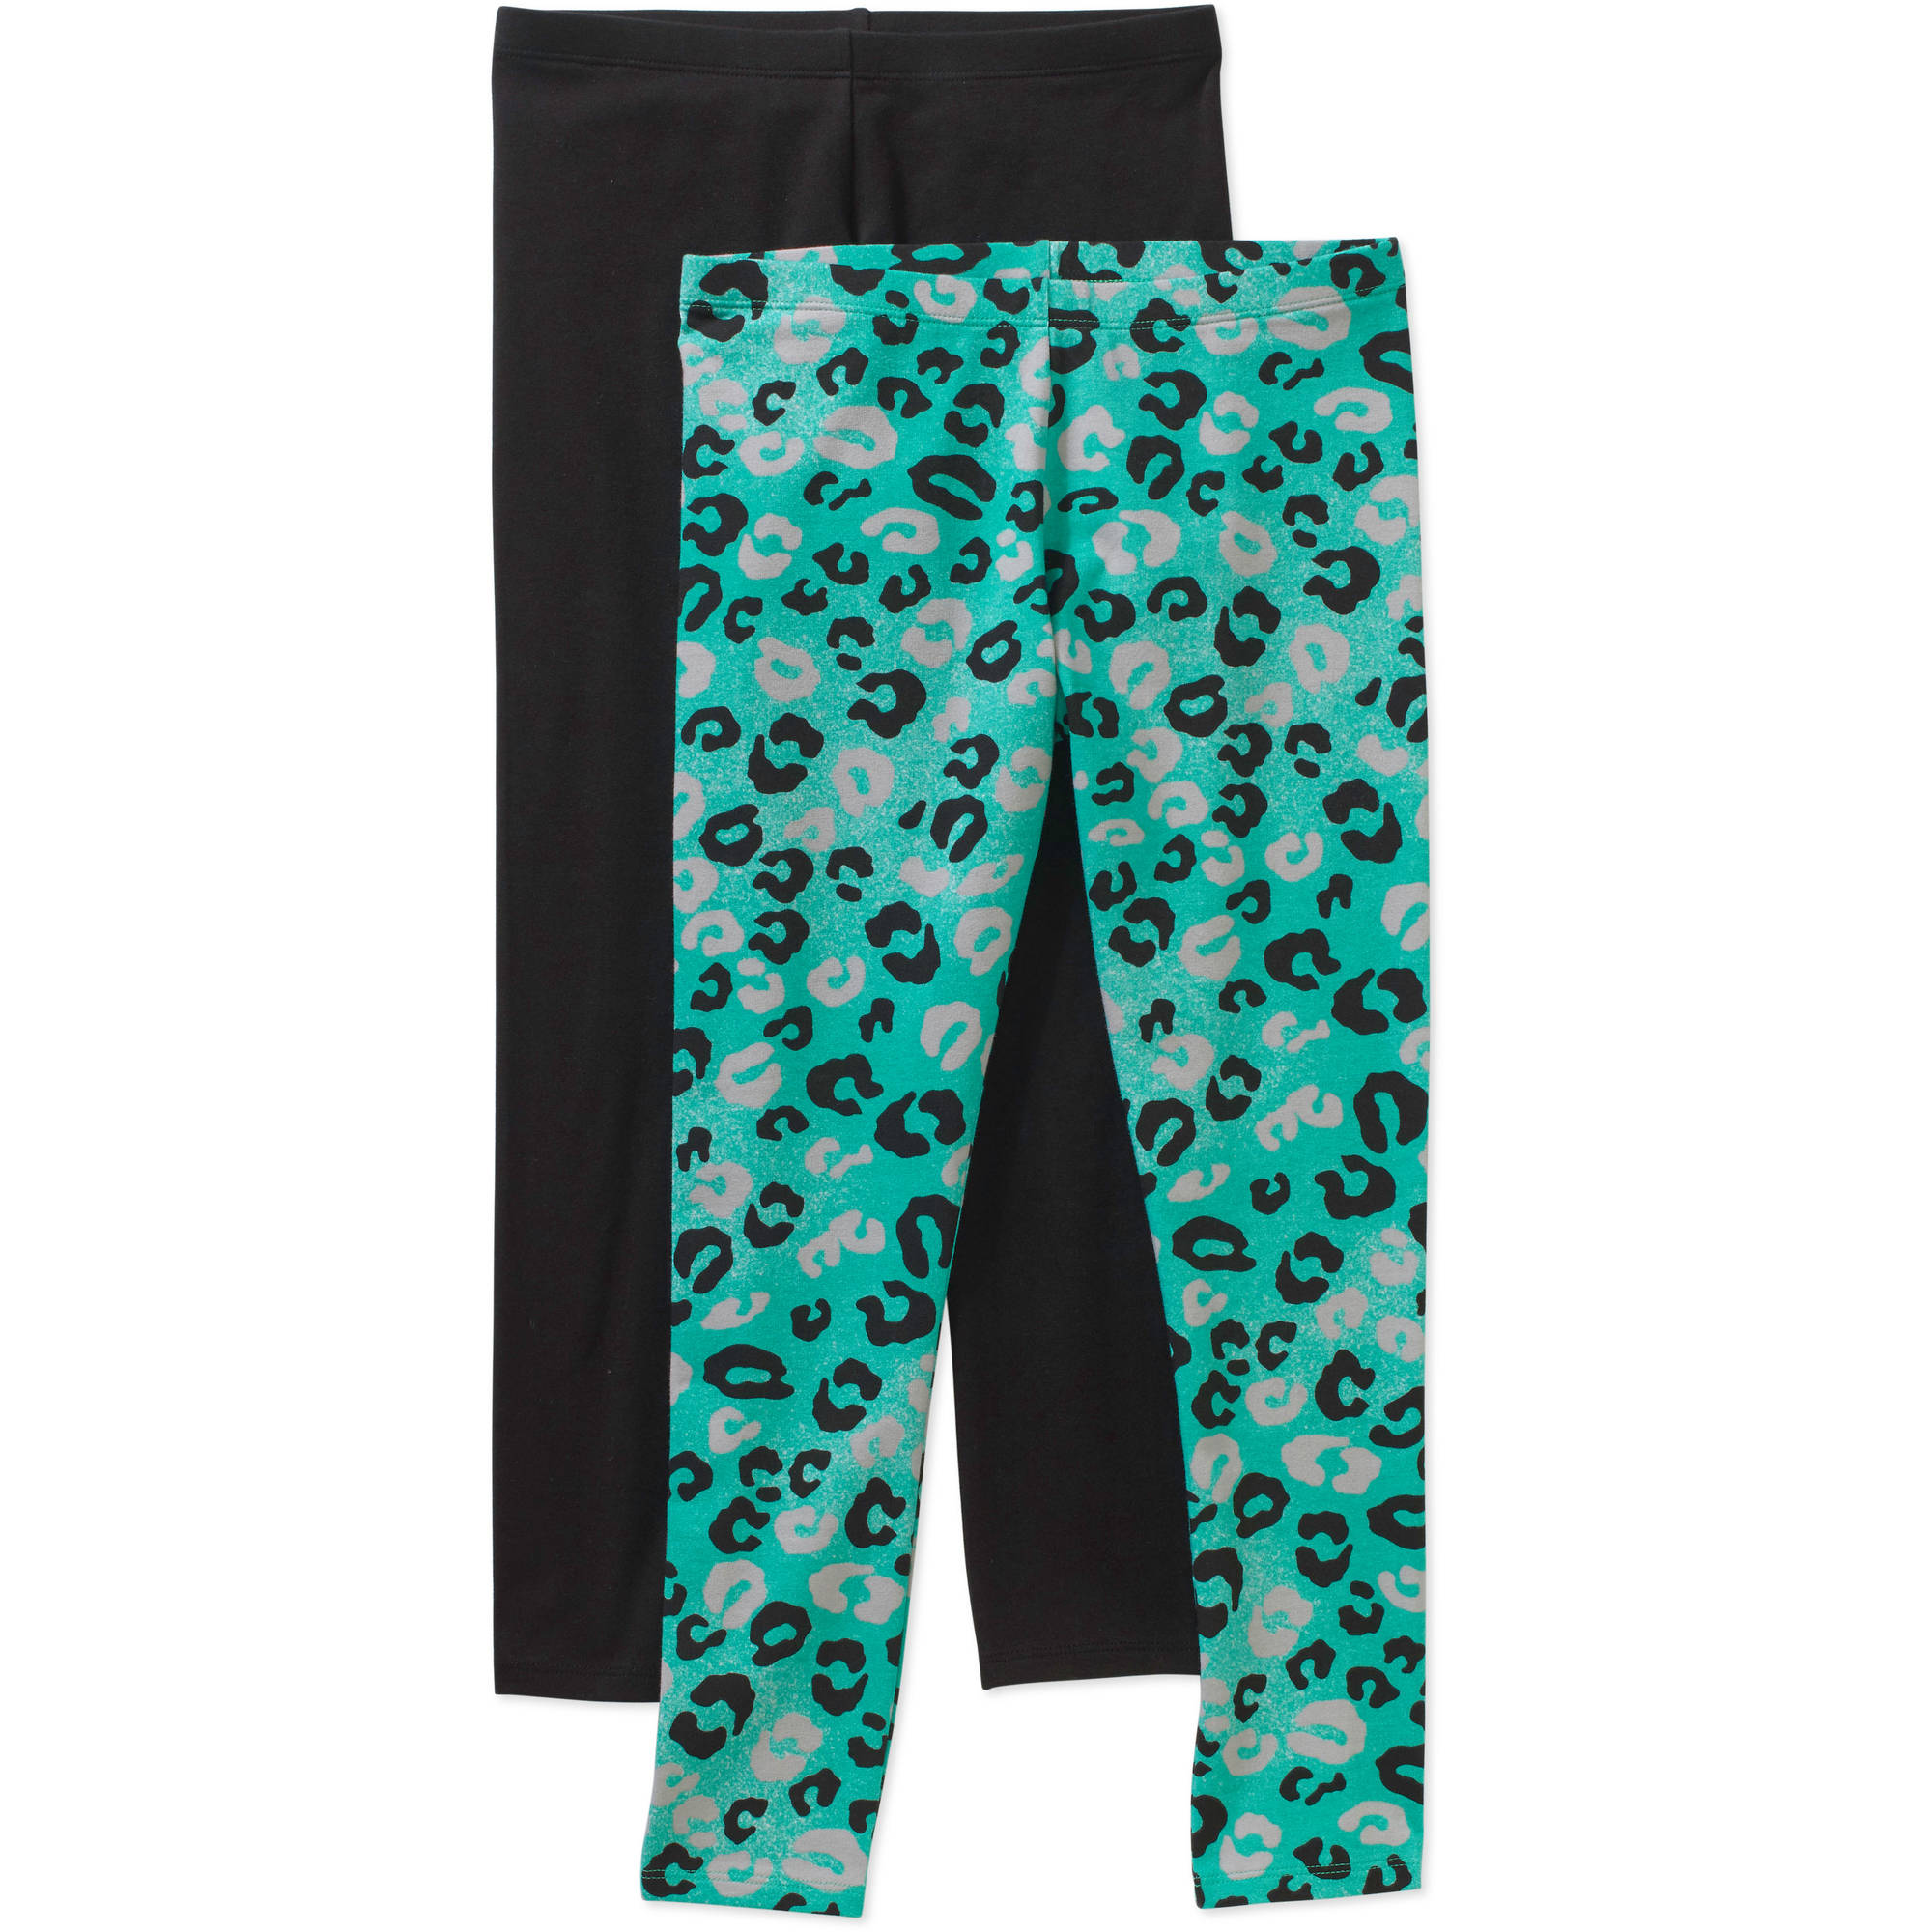 Faded Glory Girls' Essential Leggings, 2-Pack